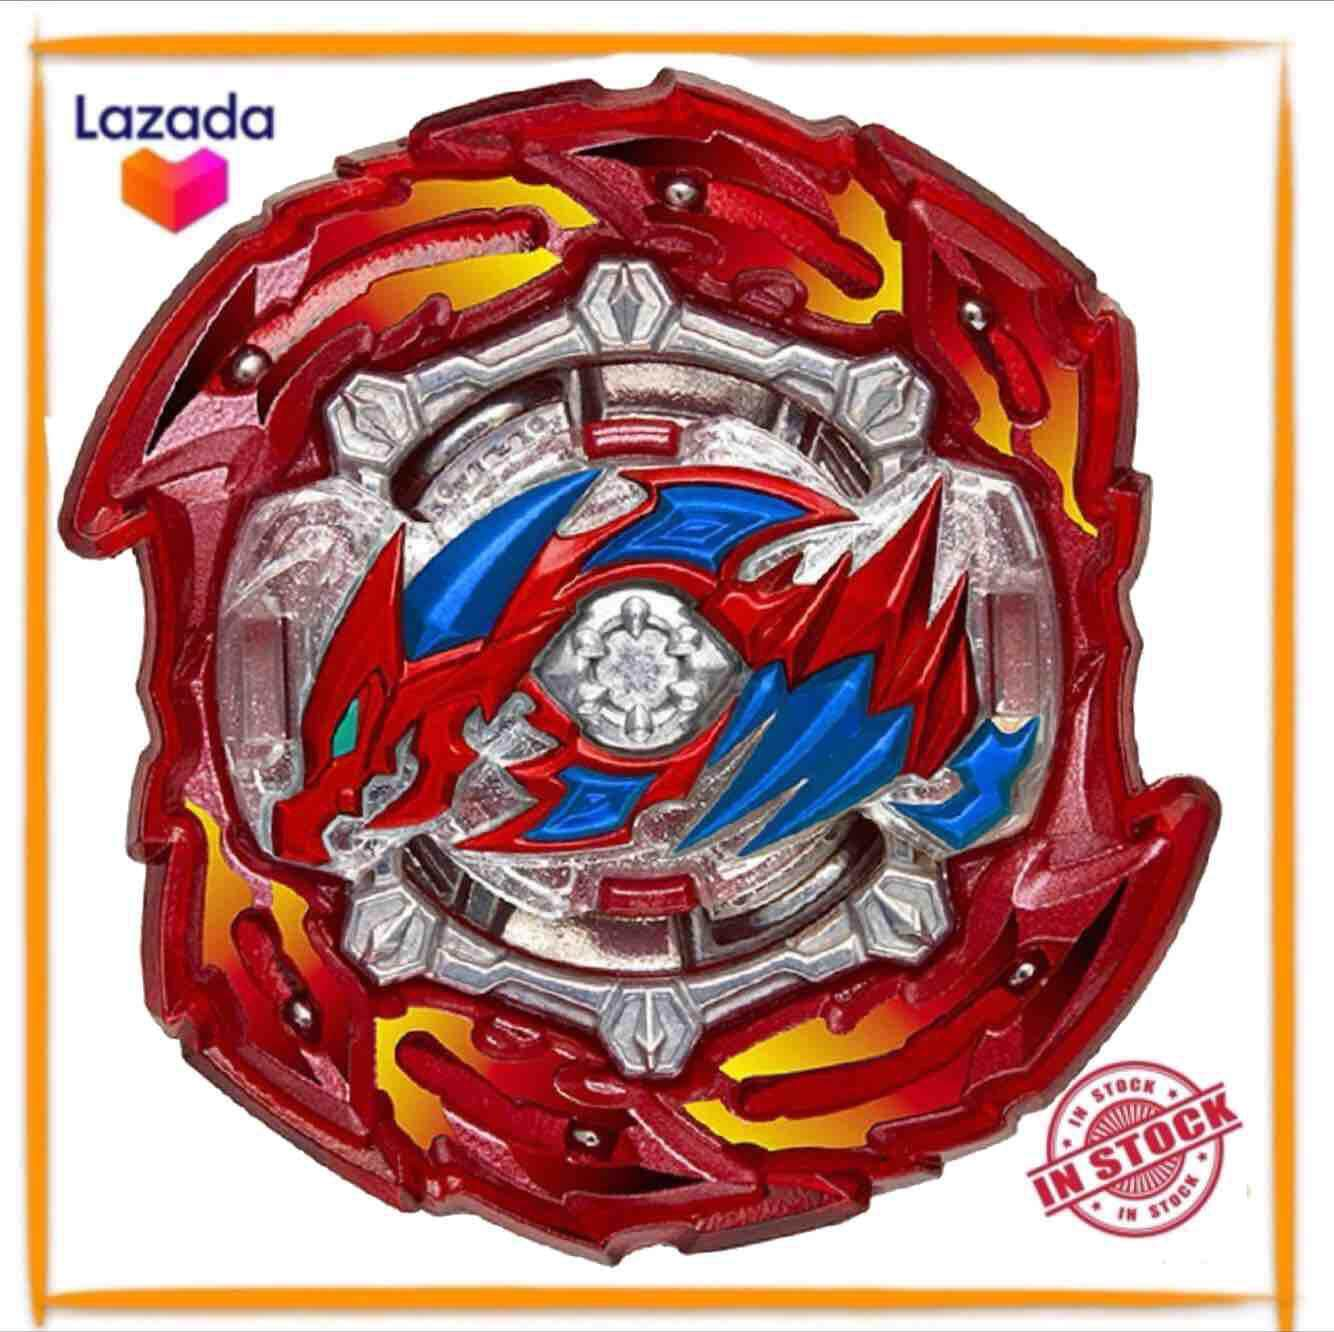 Beyblade Burst GT B-146  Gyro Spining Top Not Takara Tomy Original Equipment Manufacture Good Quality For Kids Toy Gift